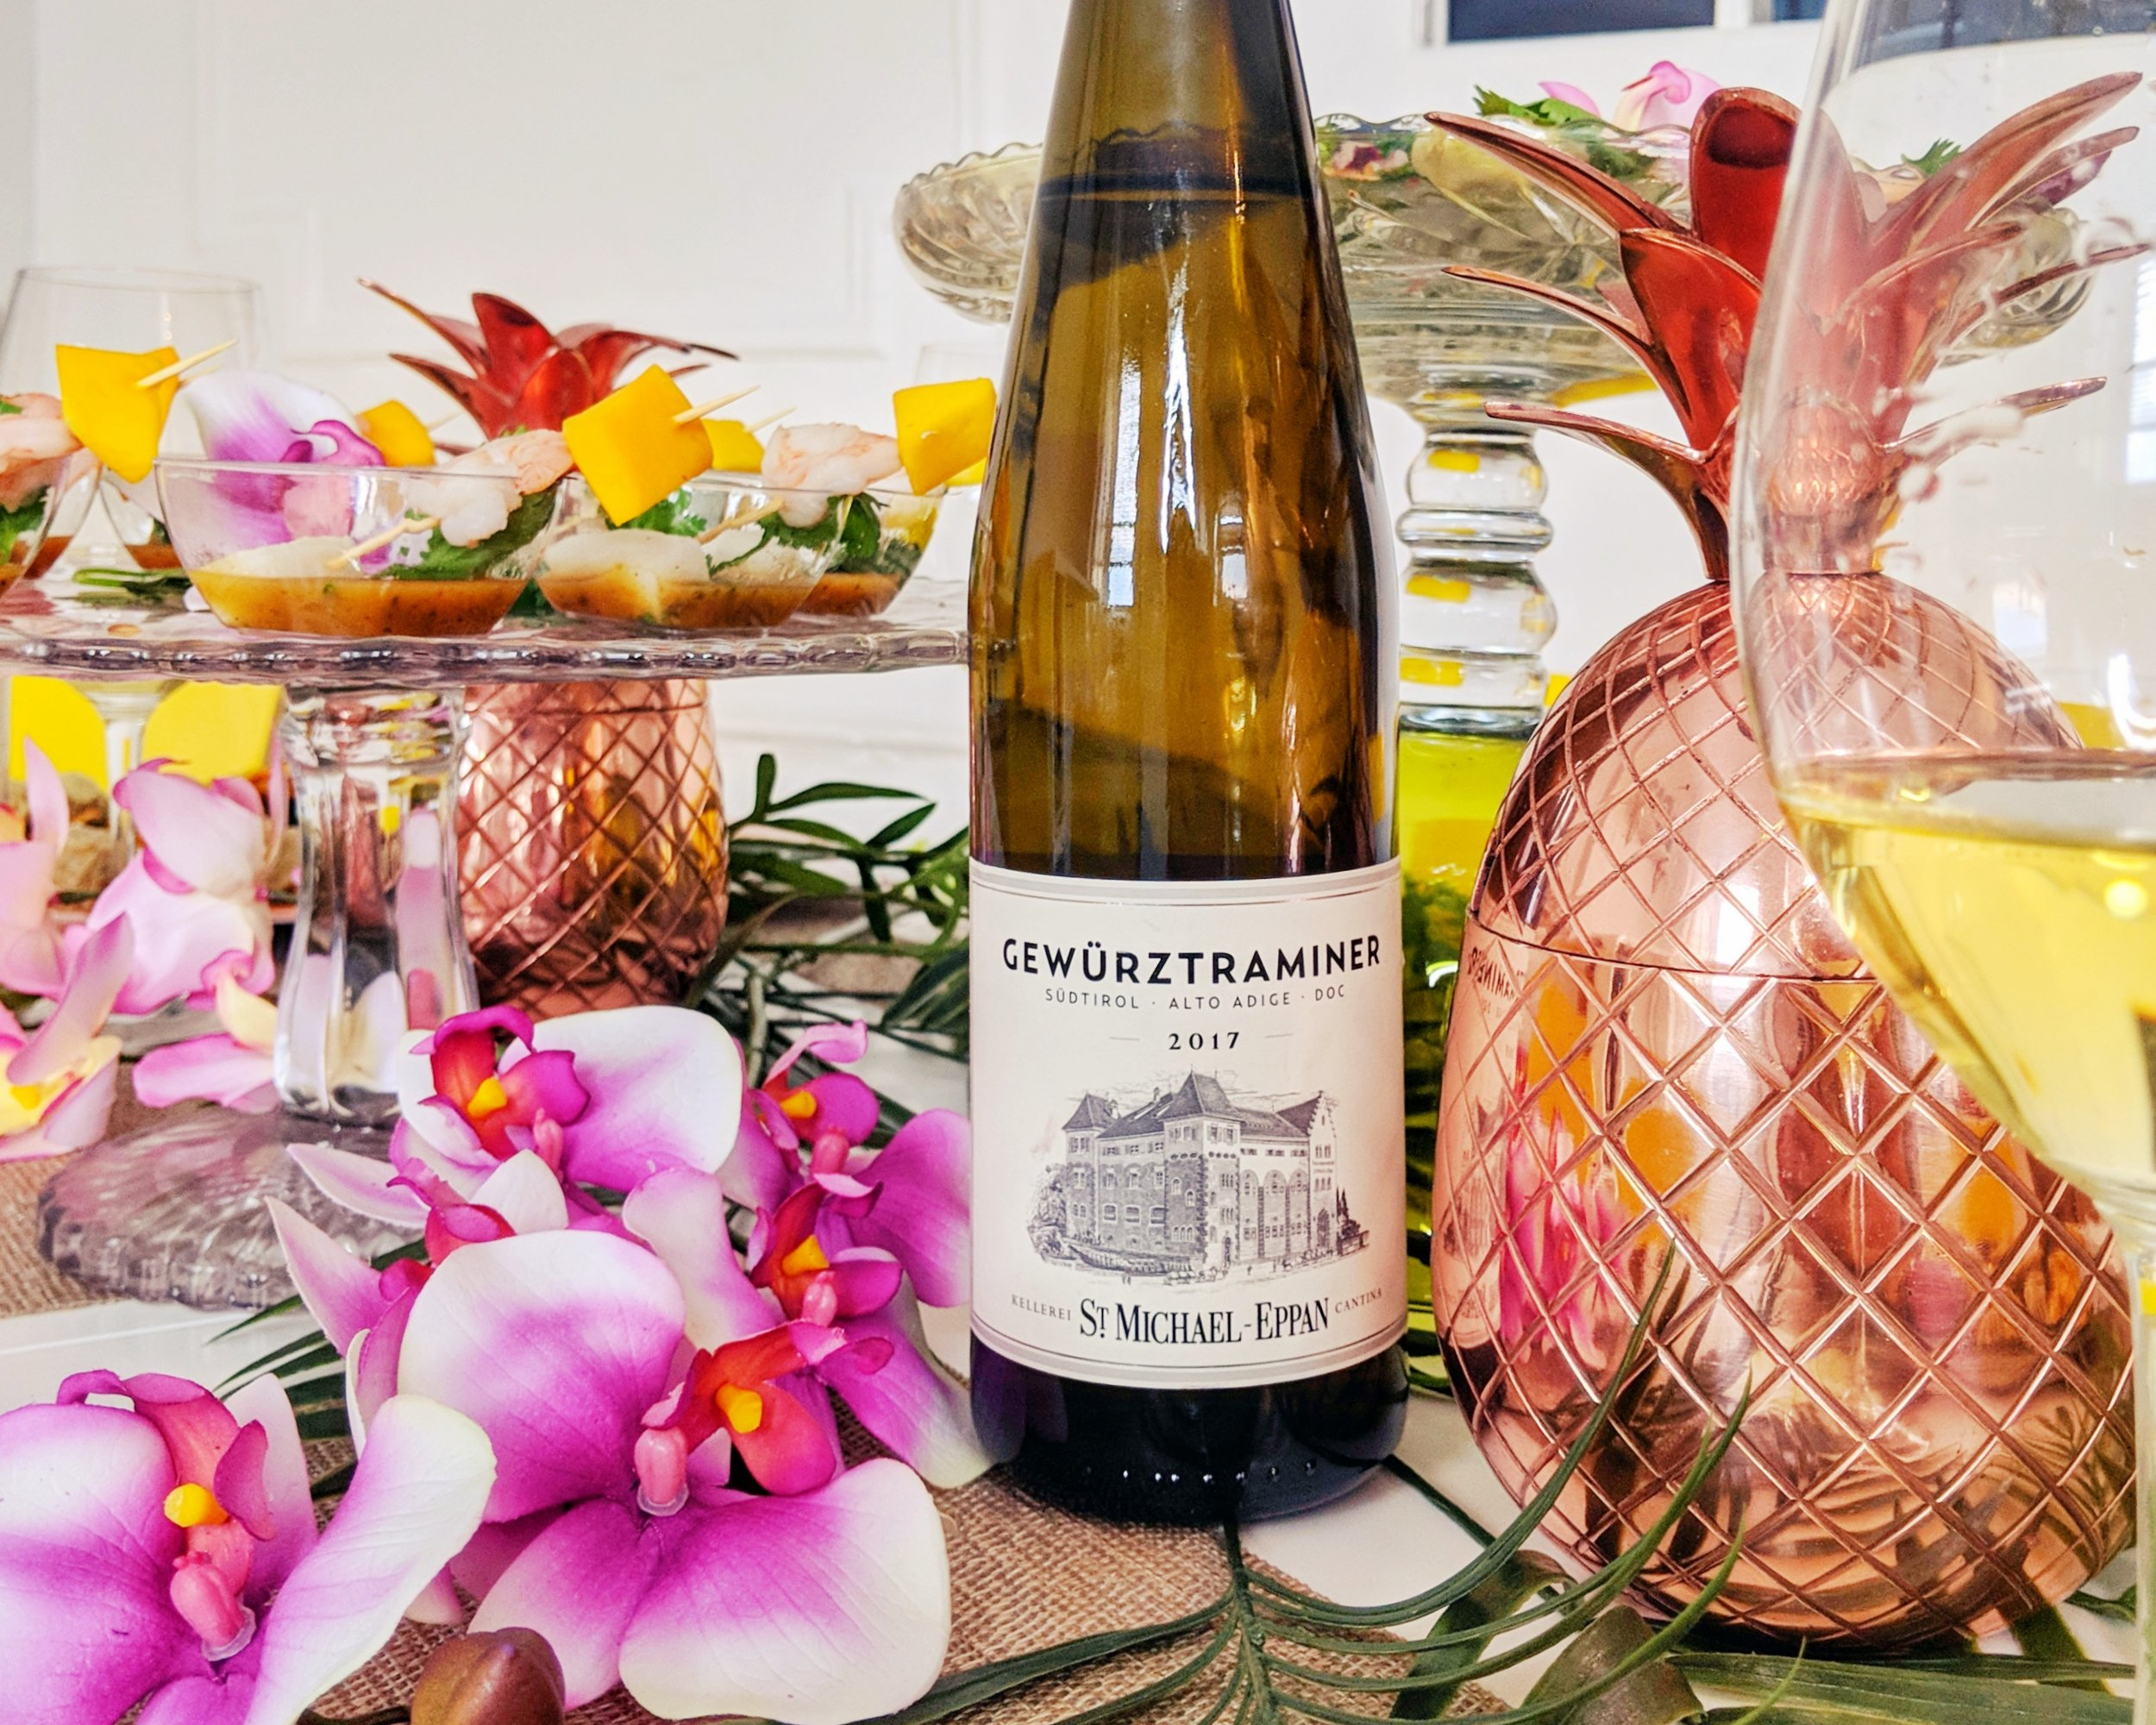 Gewurztraminer from Italy's Sudtirol-Alto-Adige region is a perfect wine pairing for Thai food